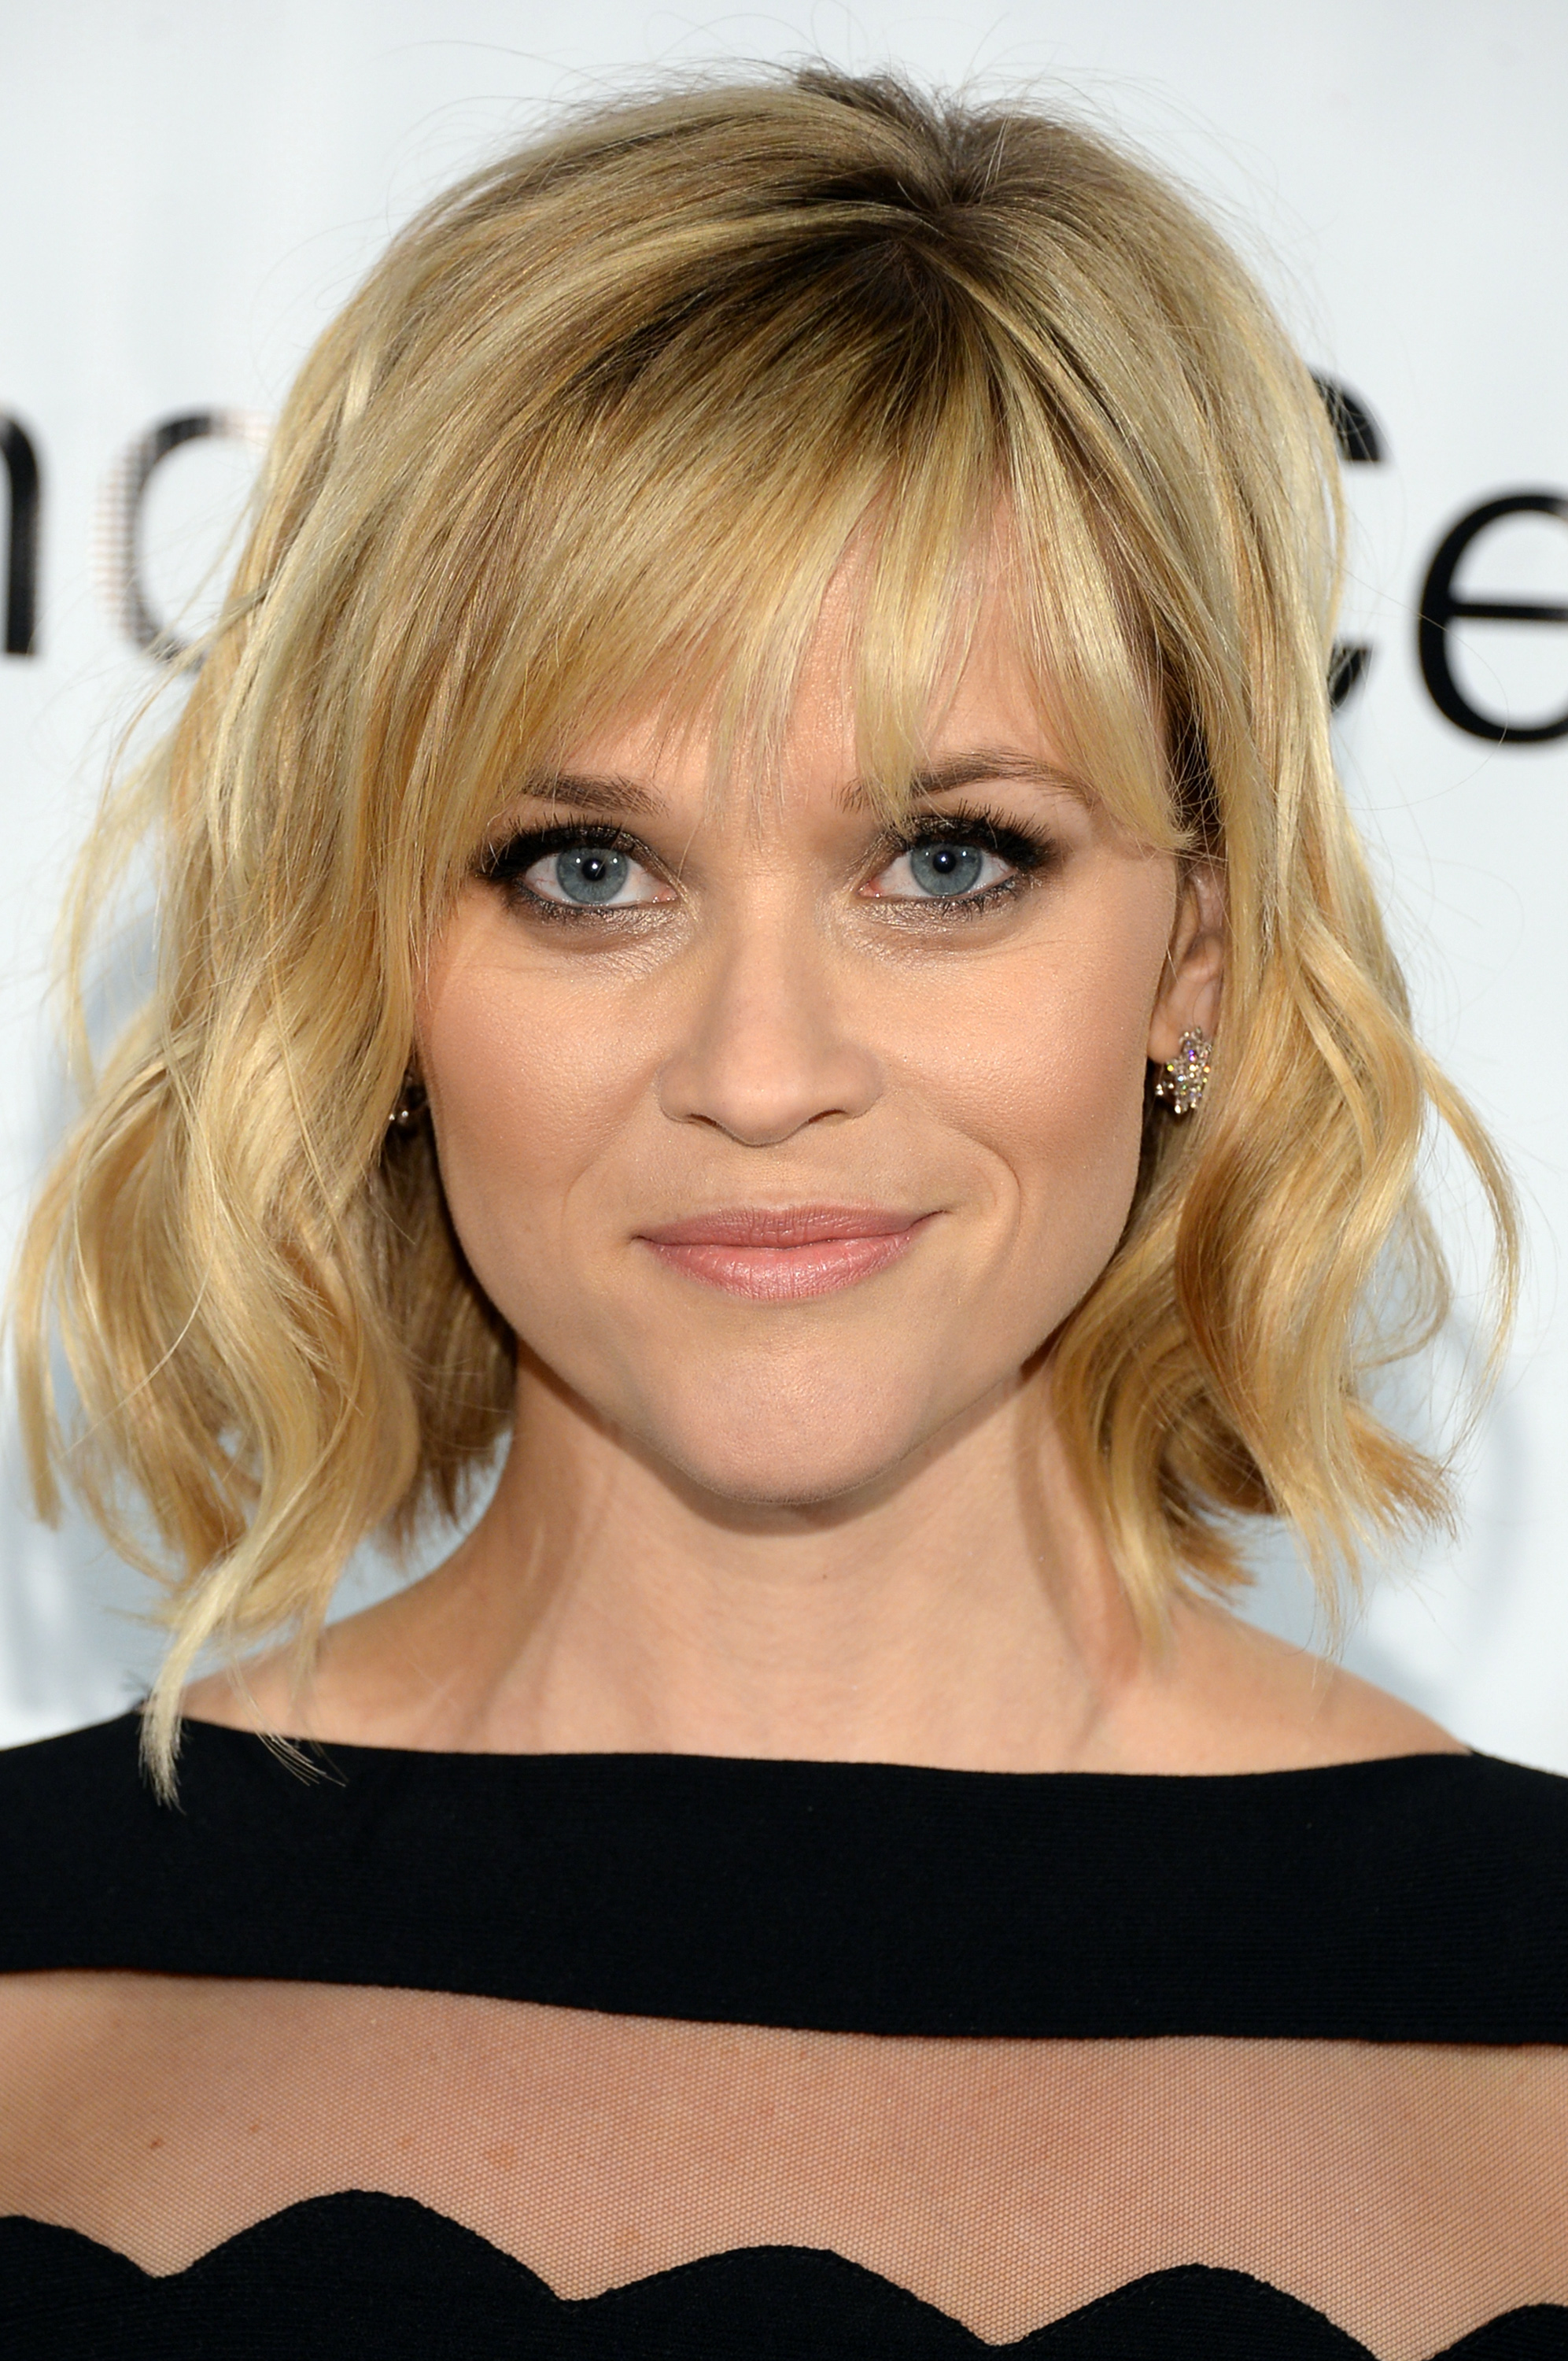 Swell 27 Hairstyles For Thin Hair Best Haircuts For Thinning Hair Short Hairstyles Gunalazisus